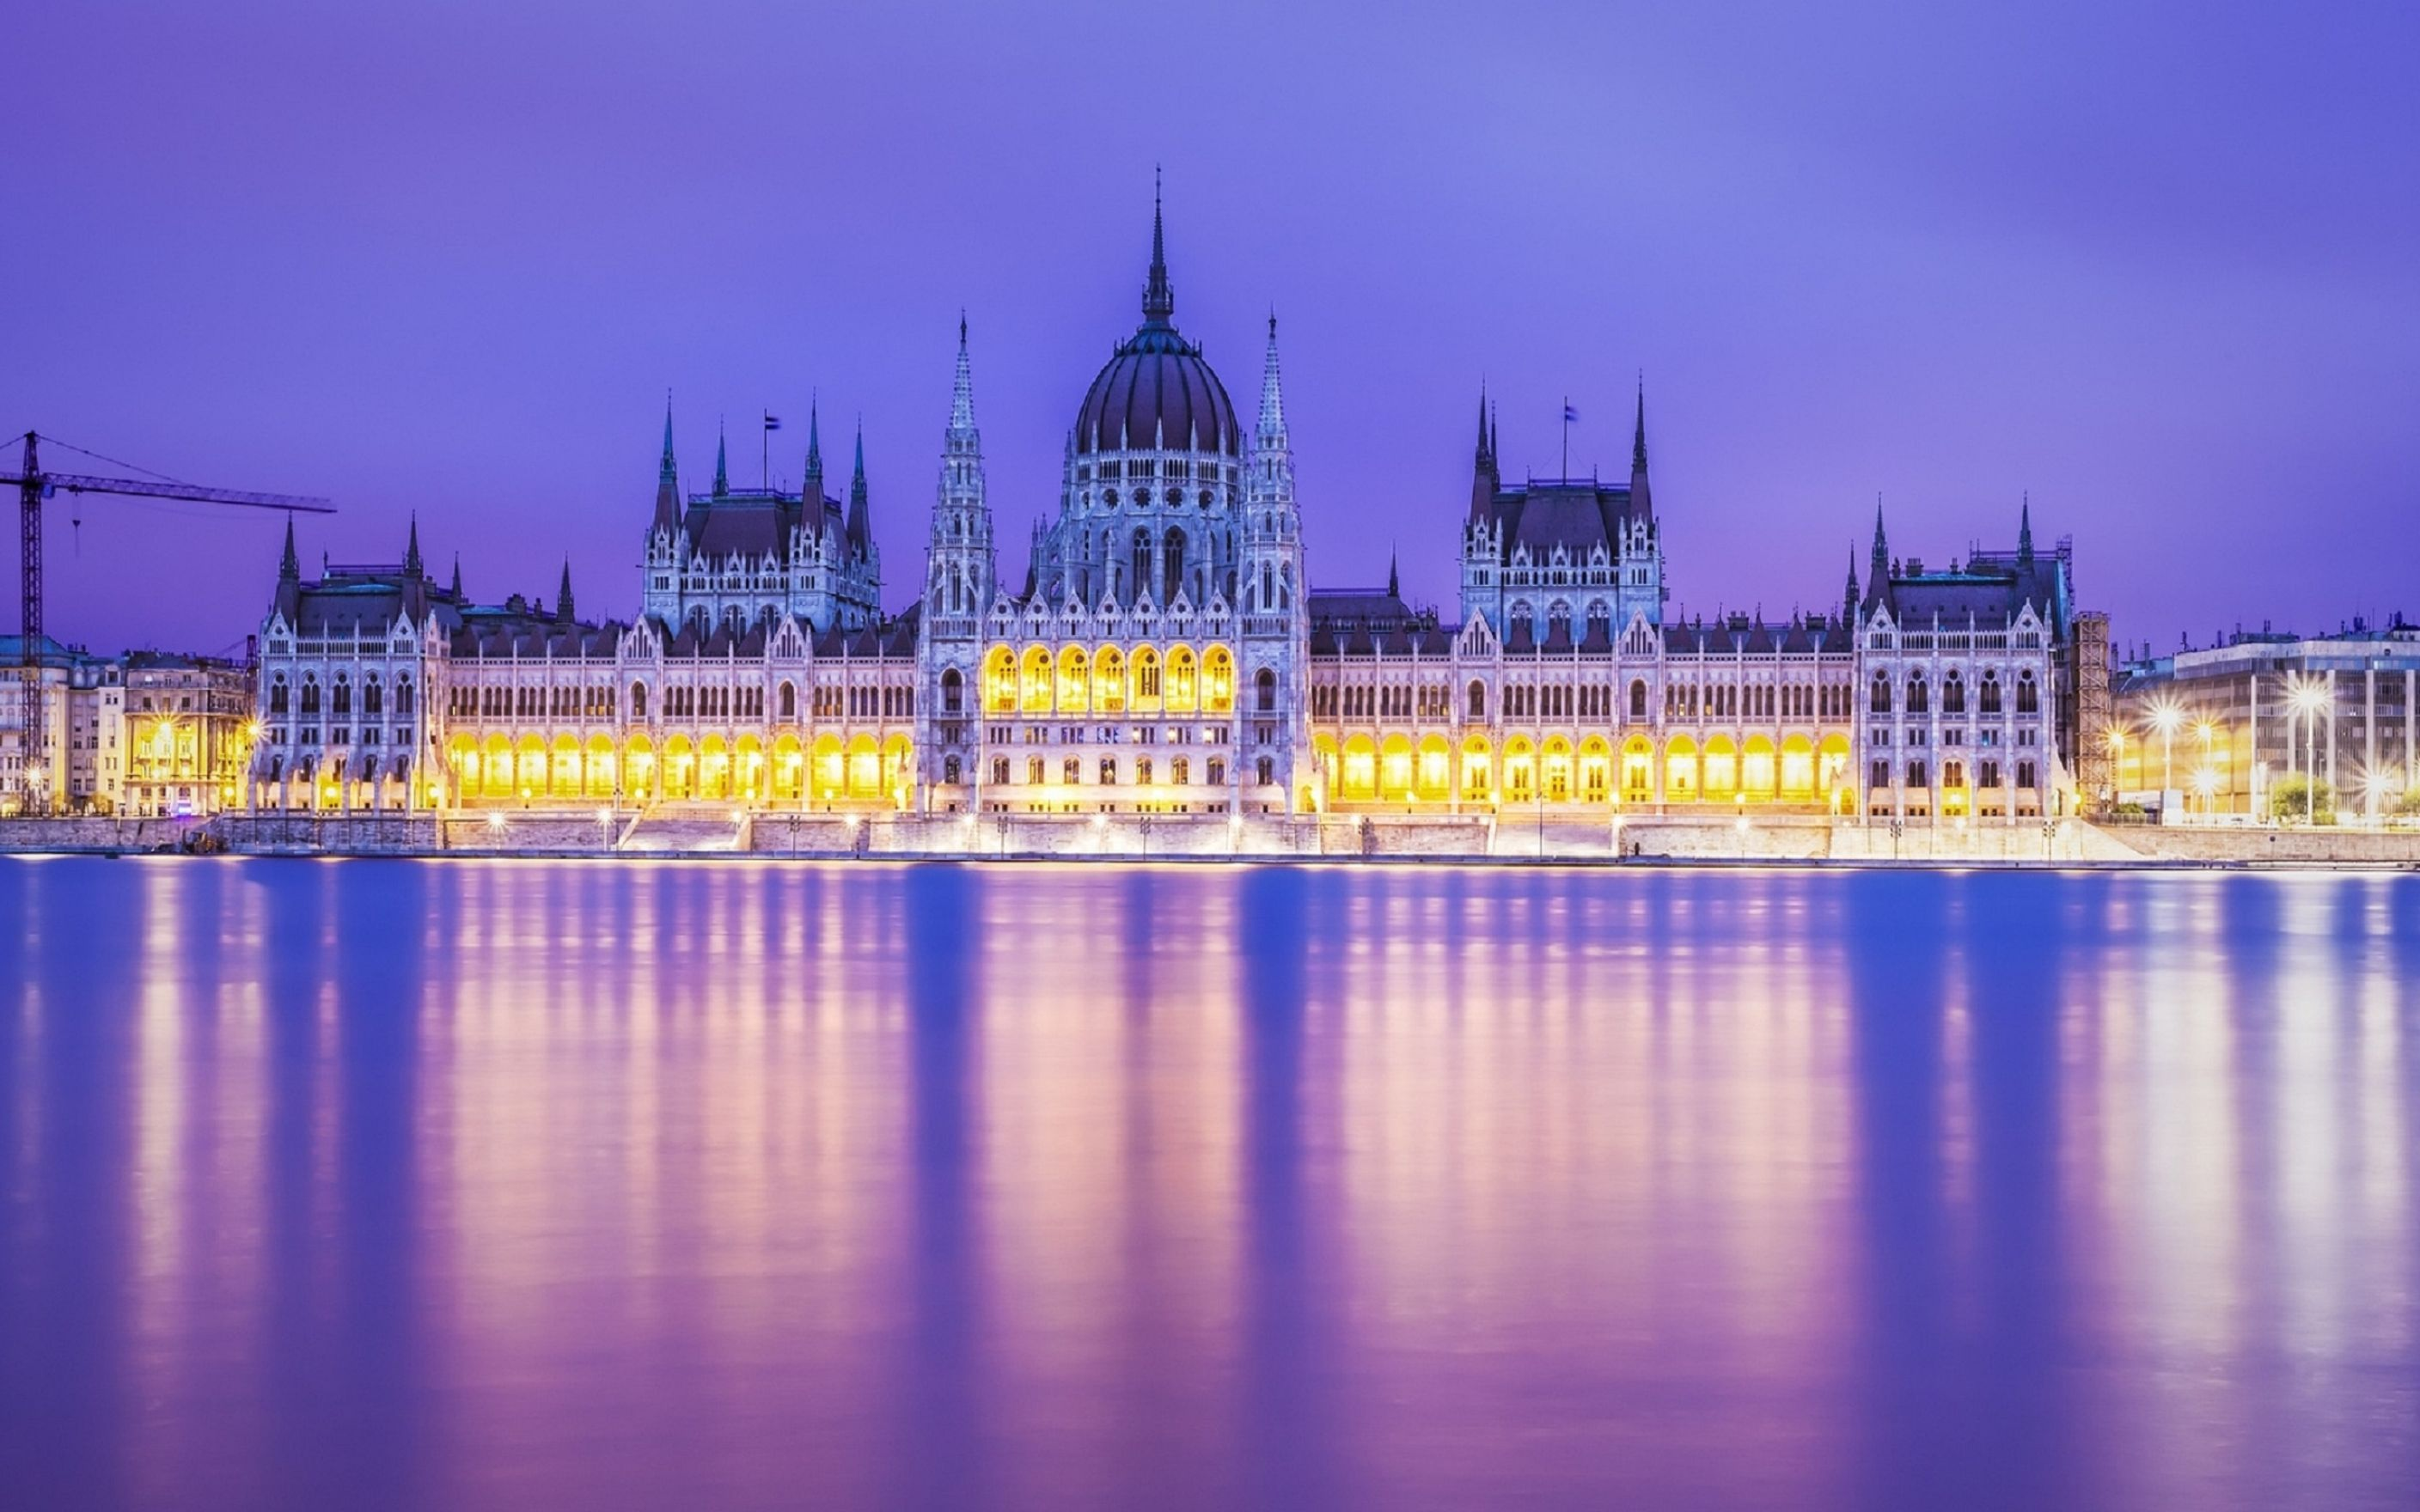 Download free HD Budapest Parliament Building In Magents Wallpaper, image